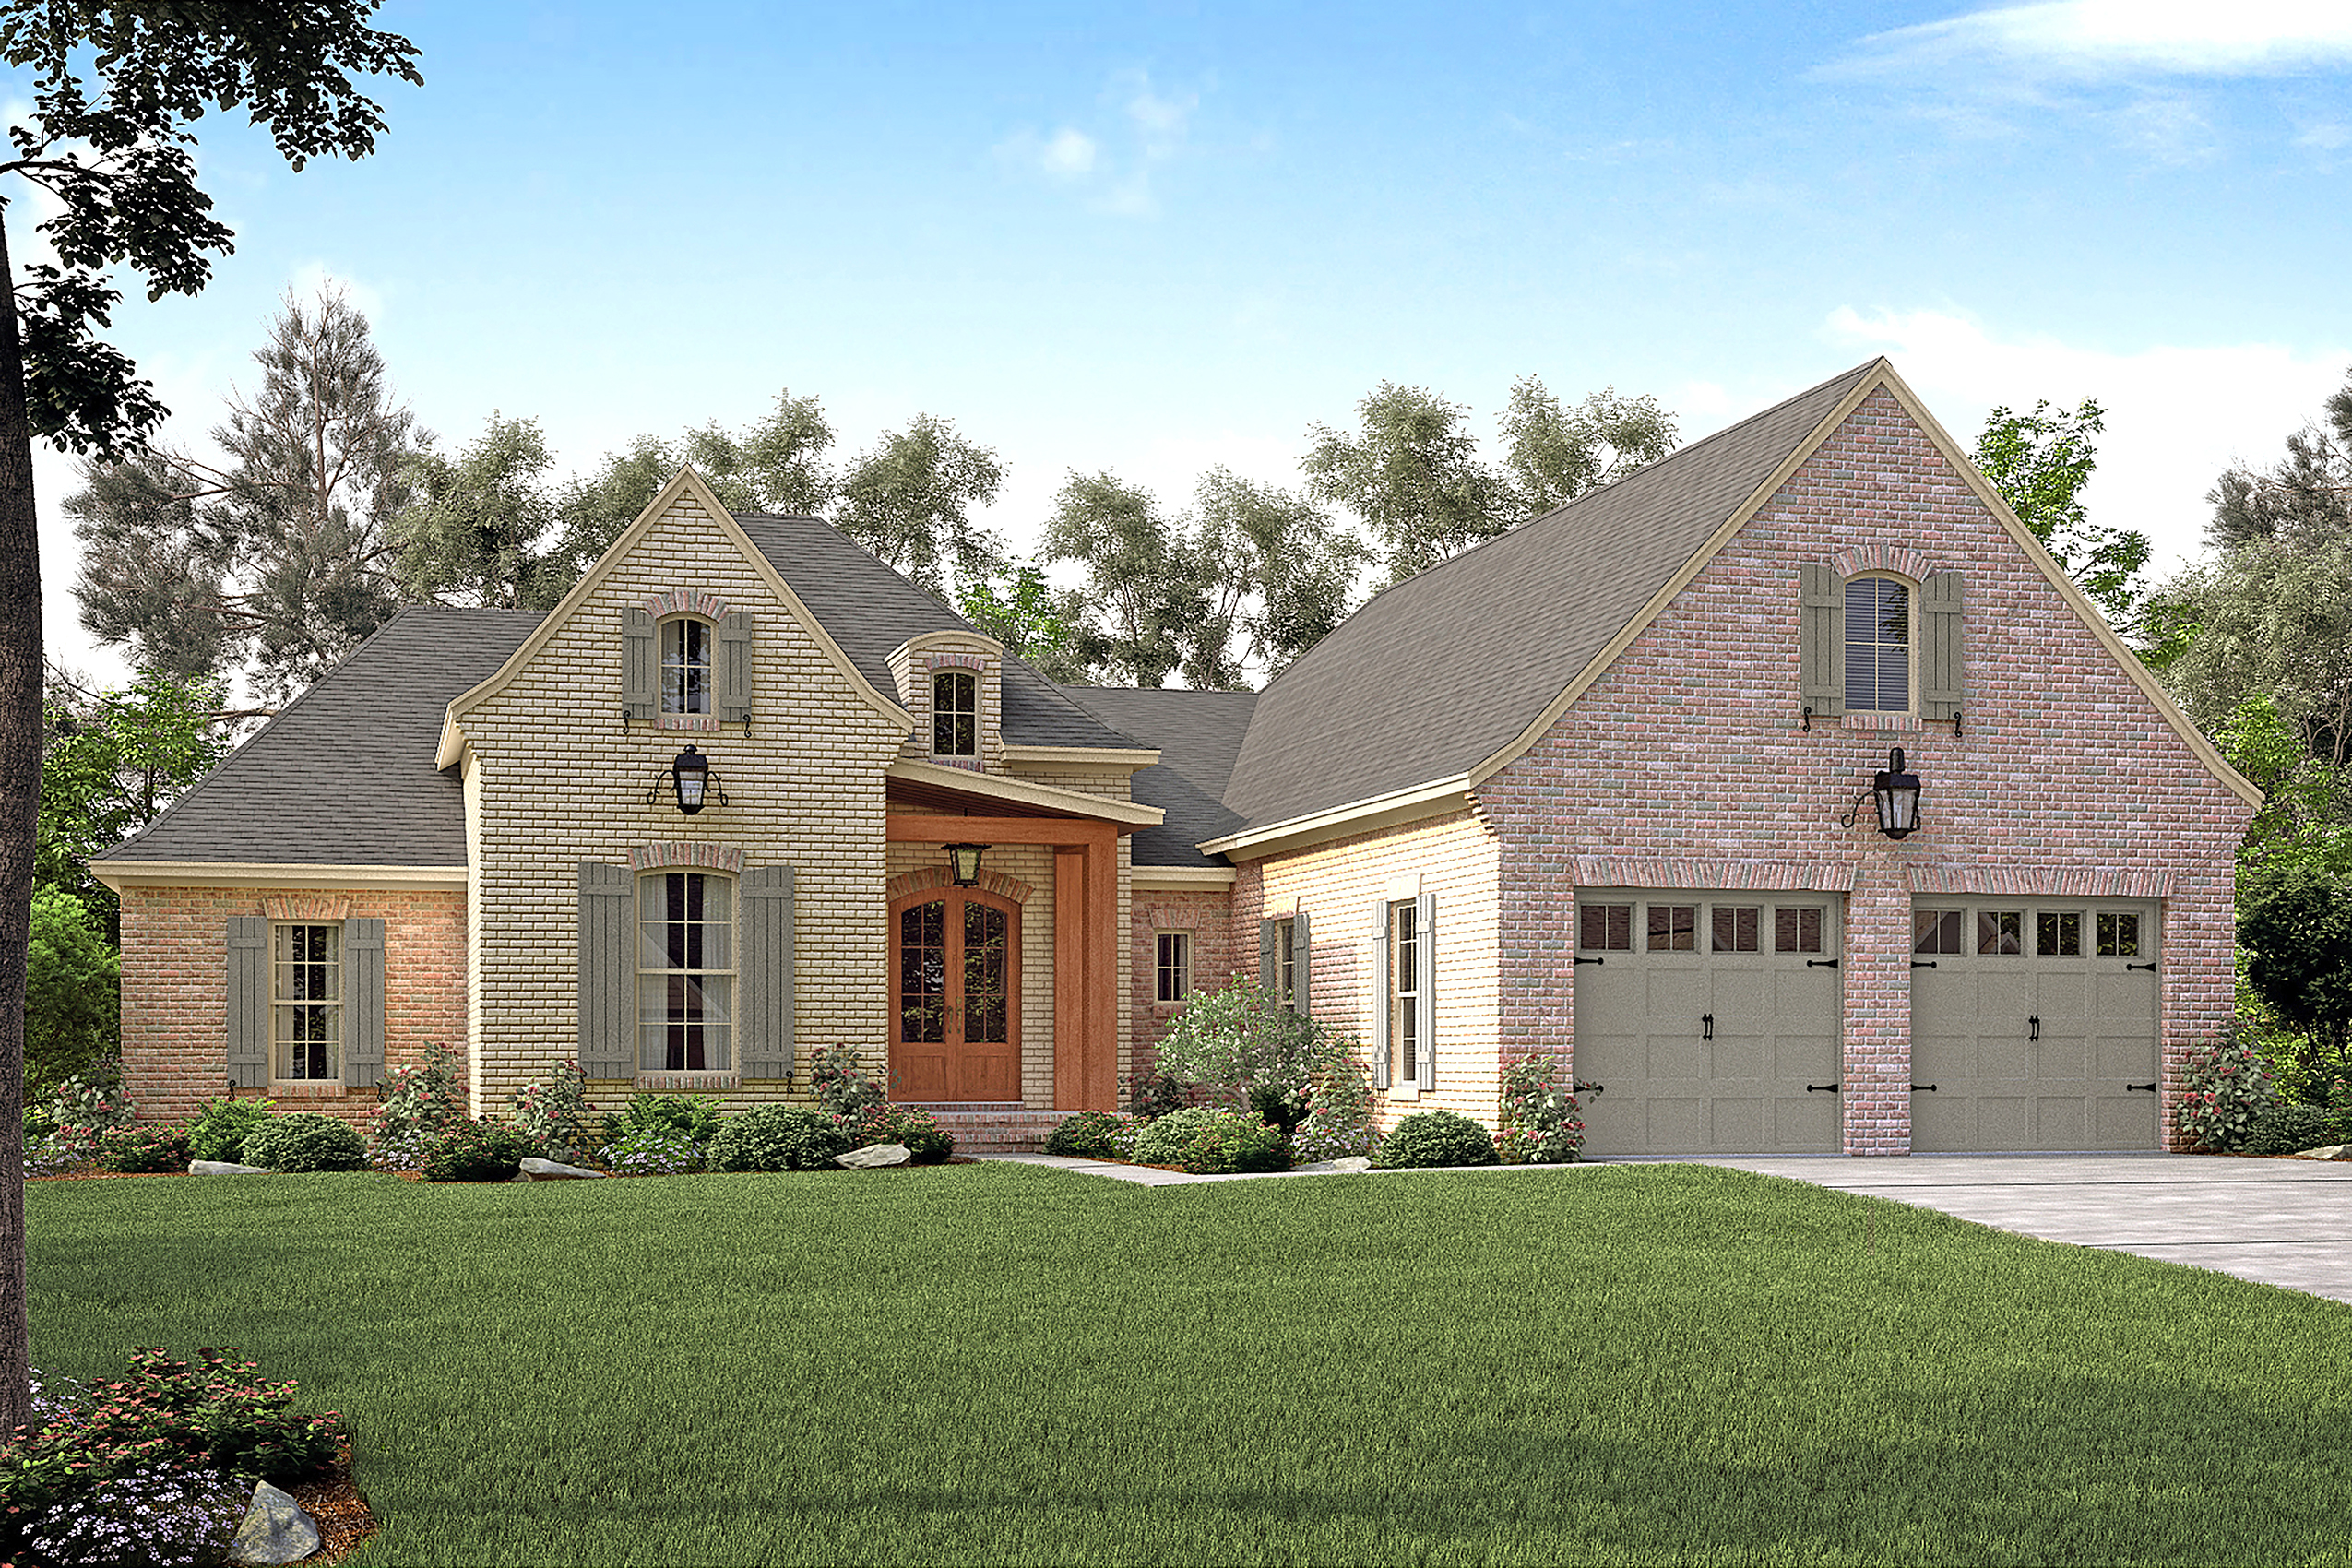 French house plan 142 1149 3 bedrm 2217 sq ft home plan for French house plans